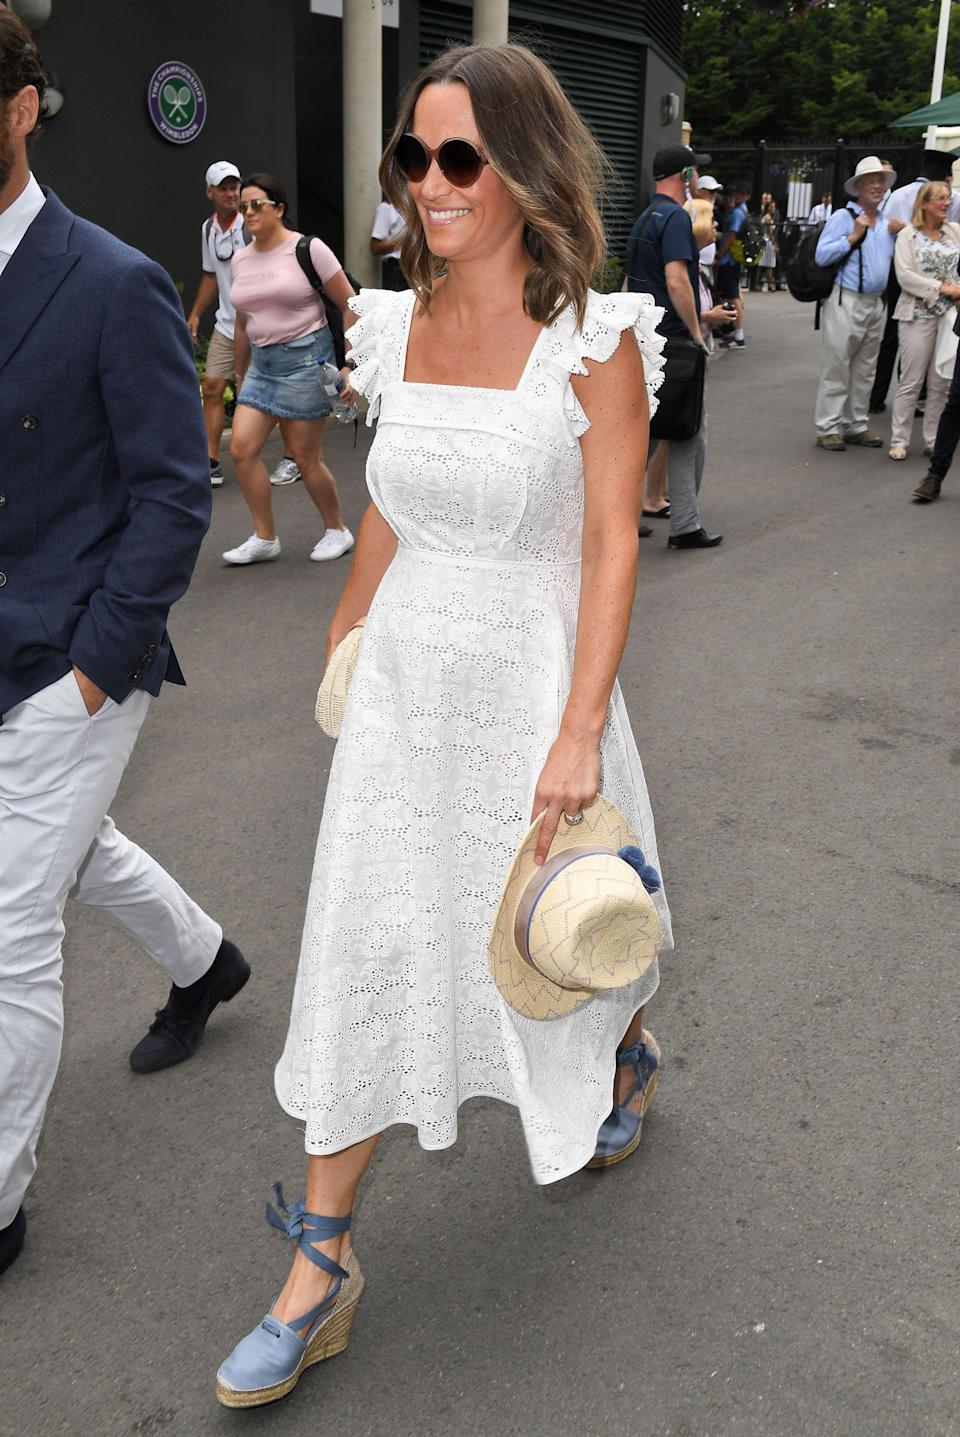 <p>Pippa Middleton arrived at Wimbledon 2018 with her brother James on 5 July. For the prestigious tournament, she donned a £680 broderie anglaise dress with frilled cap sleeves by Anna Mason London. To accessorise the look, she chose a £229.00 hat and clutch by Jess Collett. <em>[Photo: Rex]</em> </p>